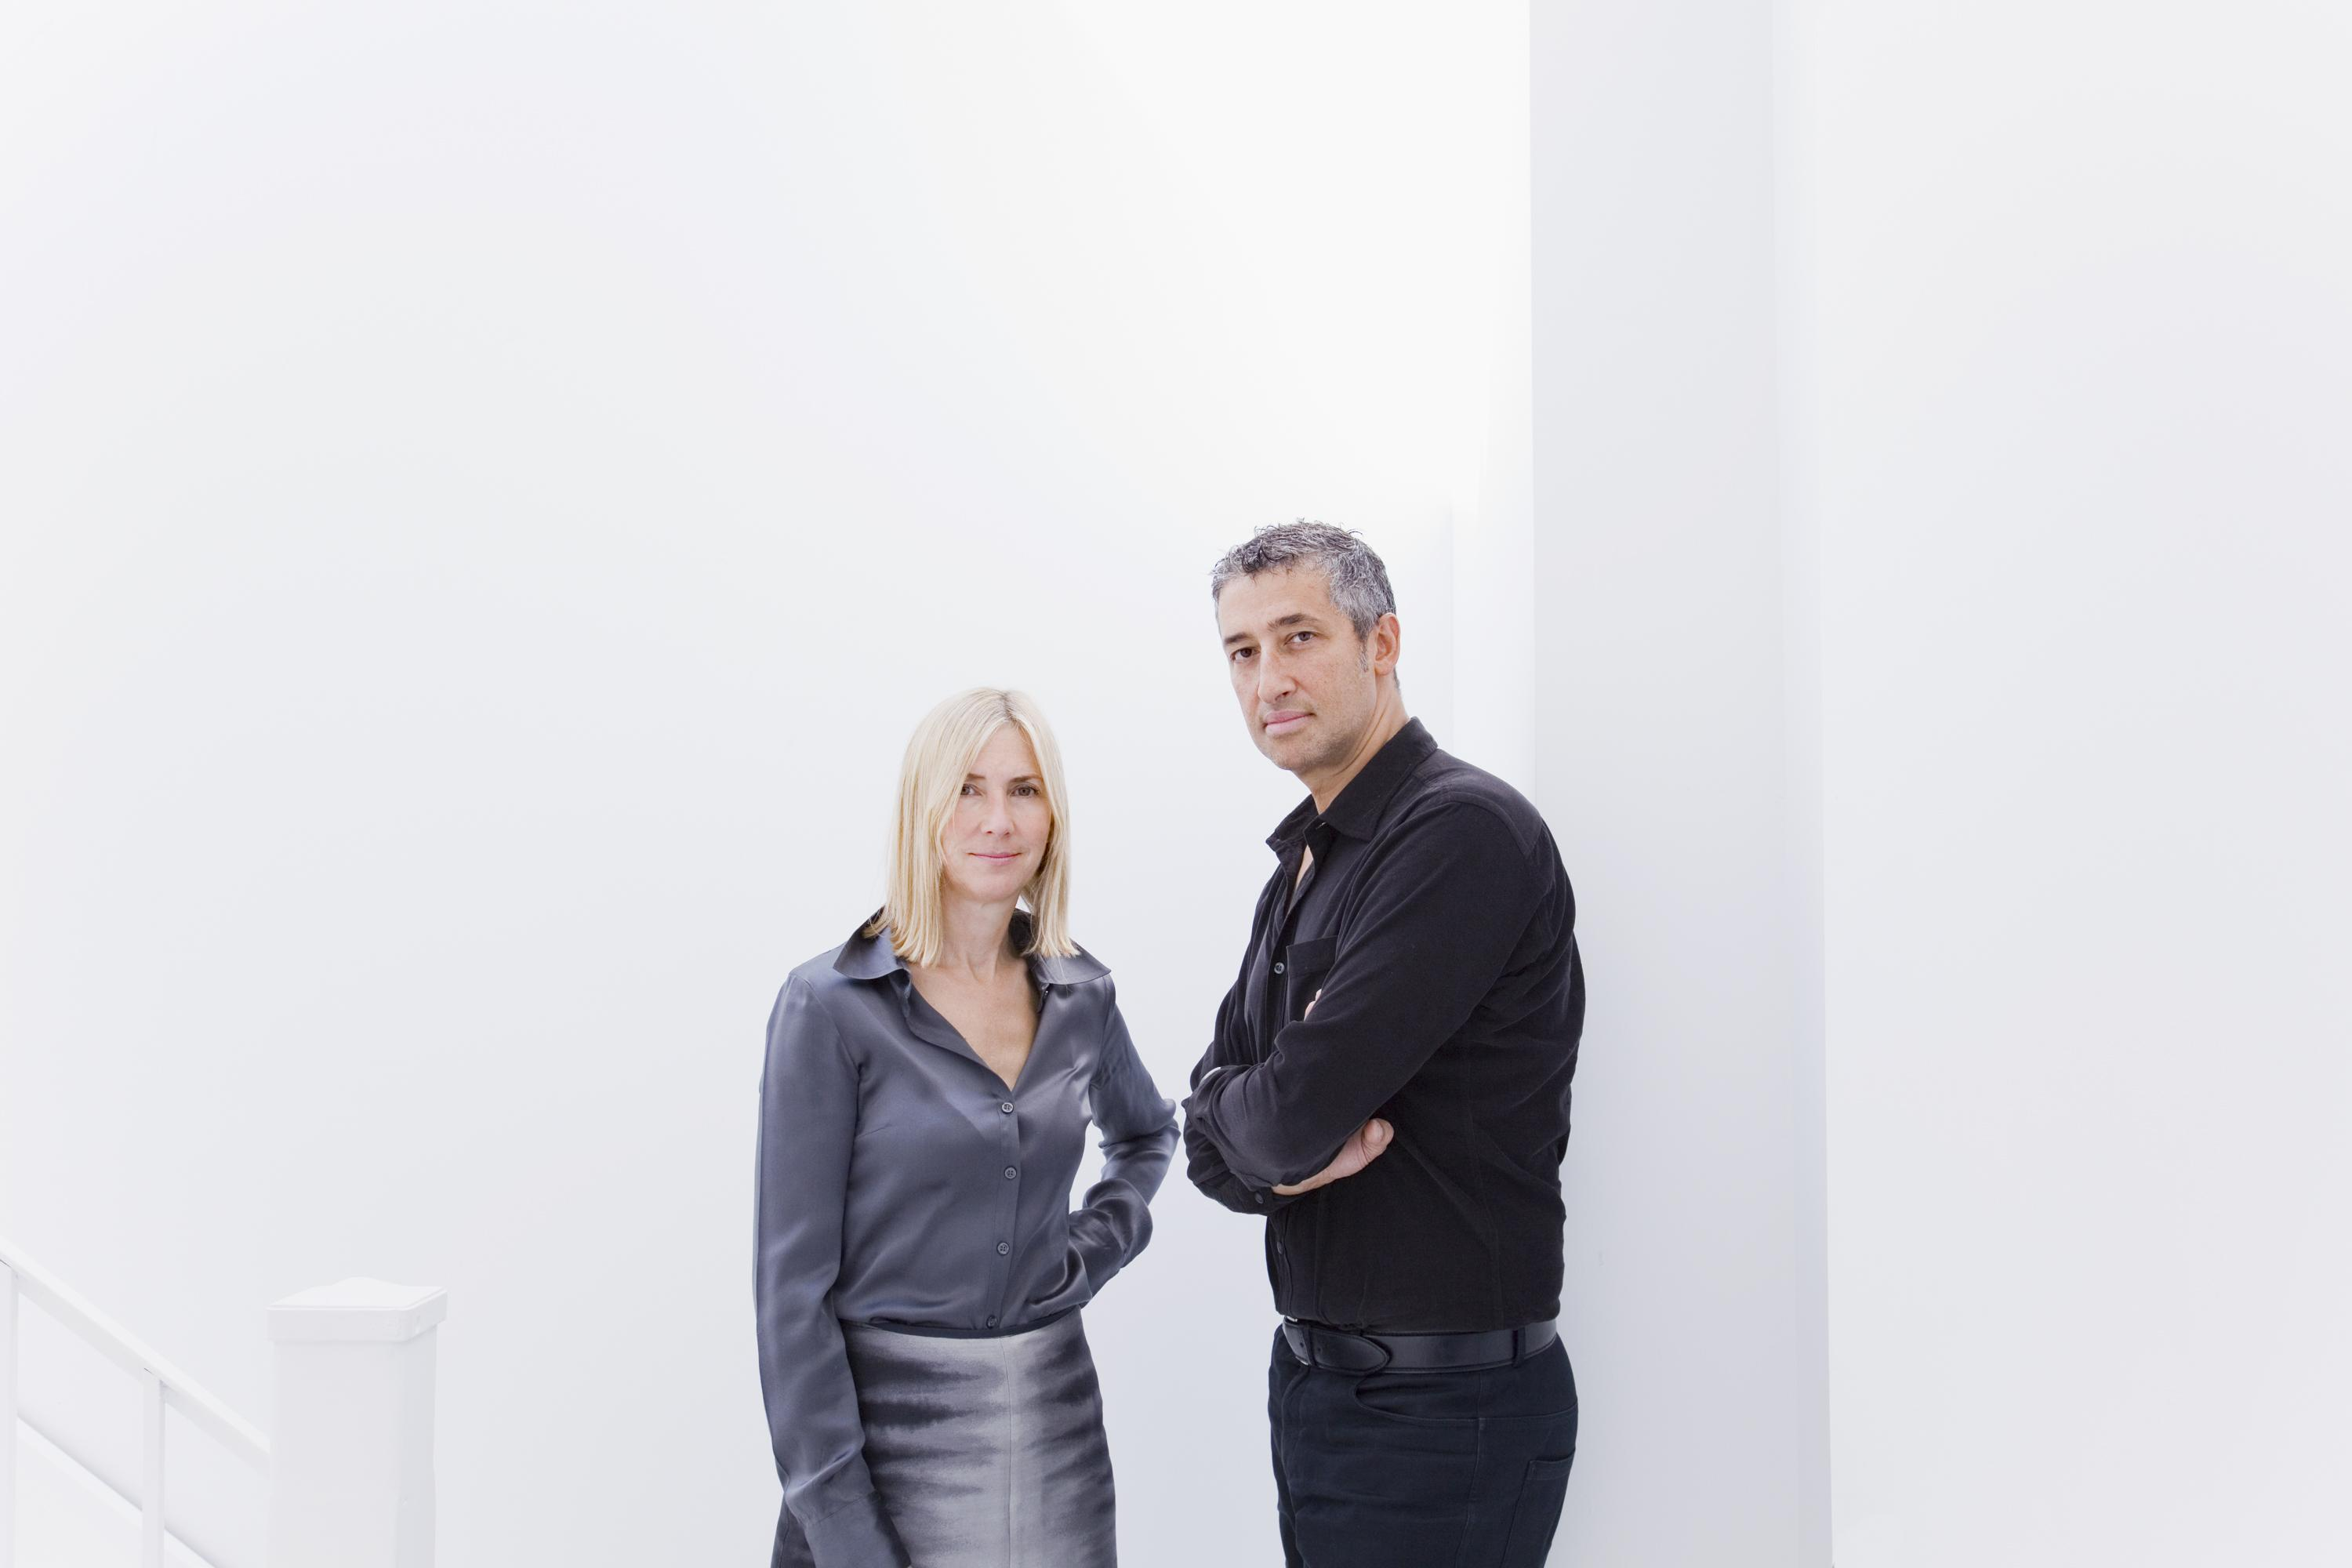 A woman and man in business casual clothing pose in front of a white wall